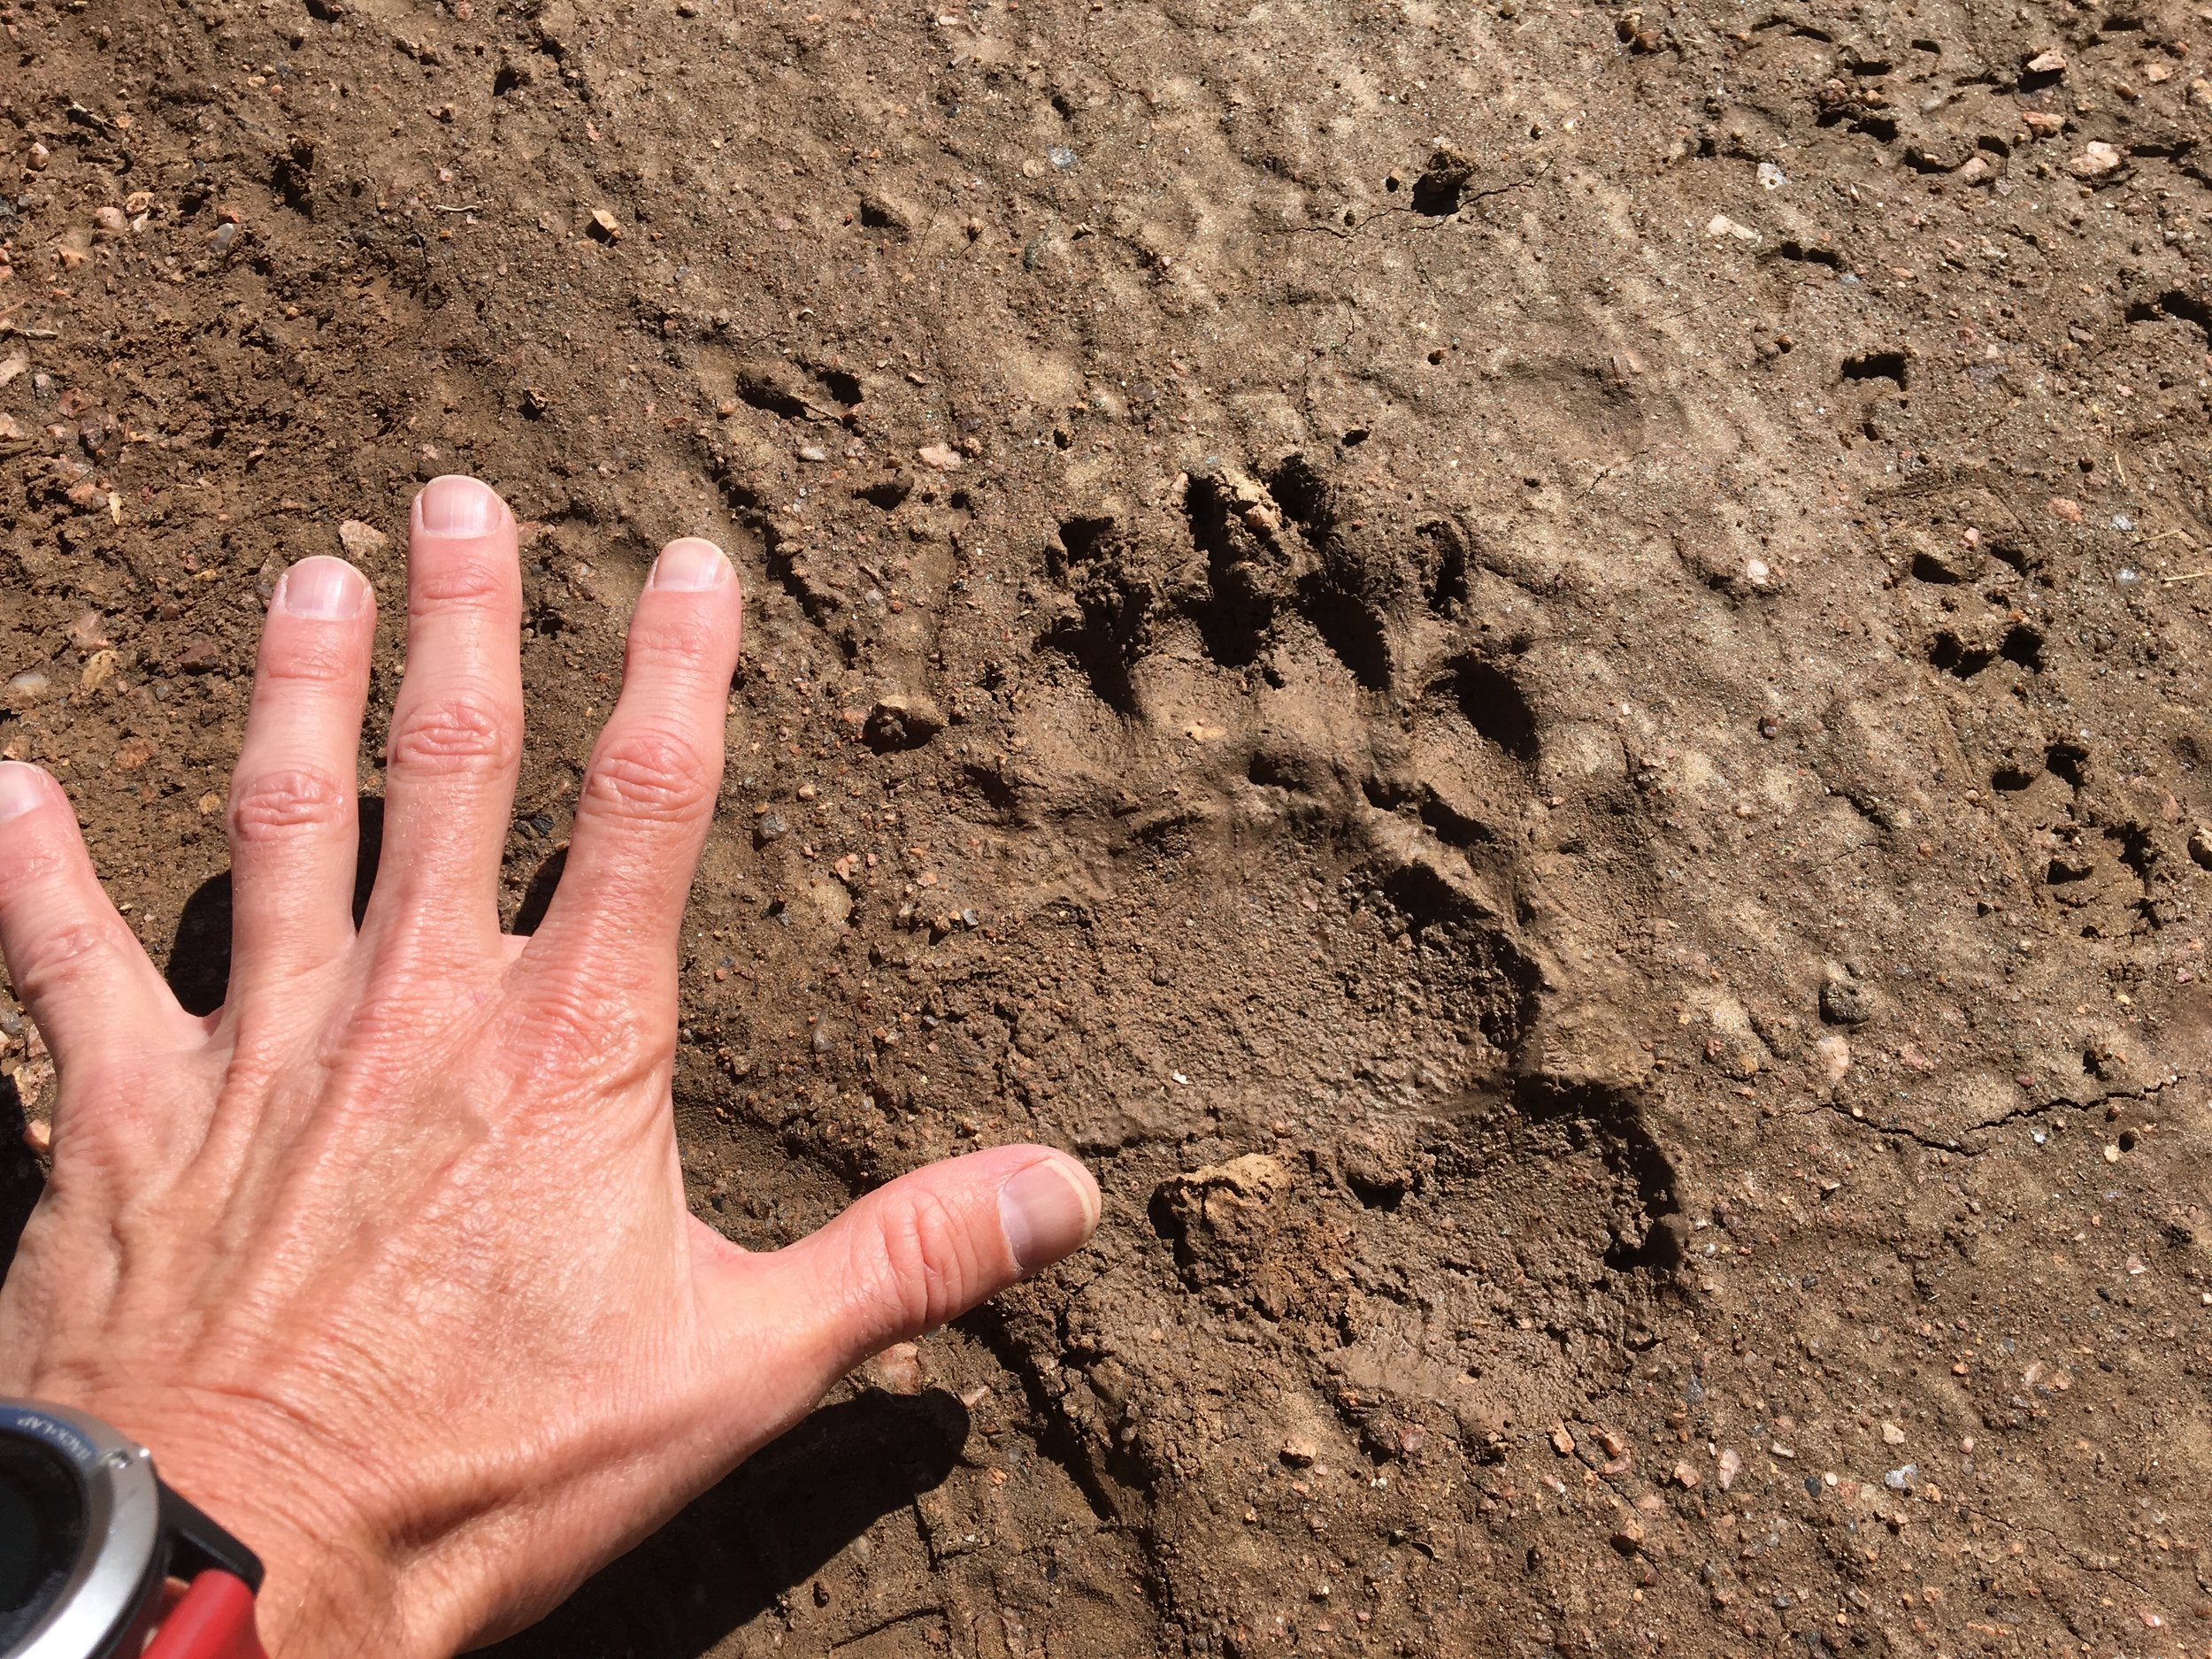 No bear sightings on my long run this week, only fresh bear tracks.